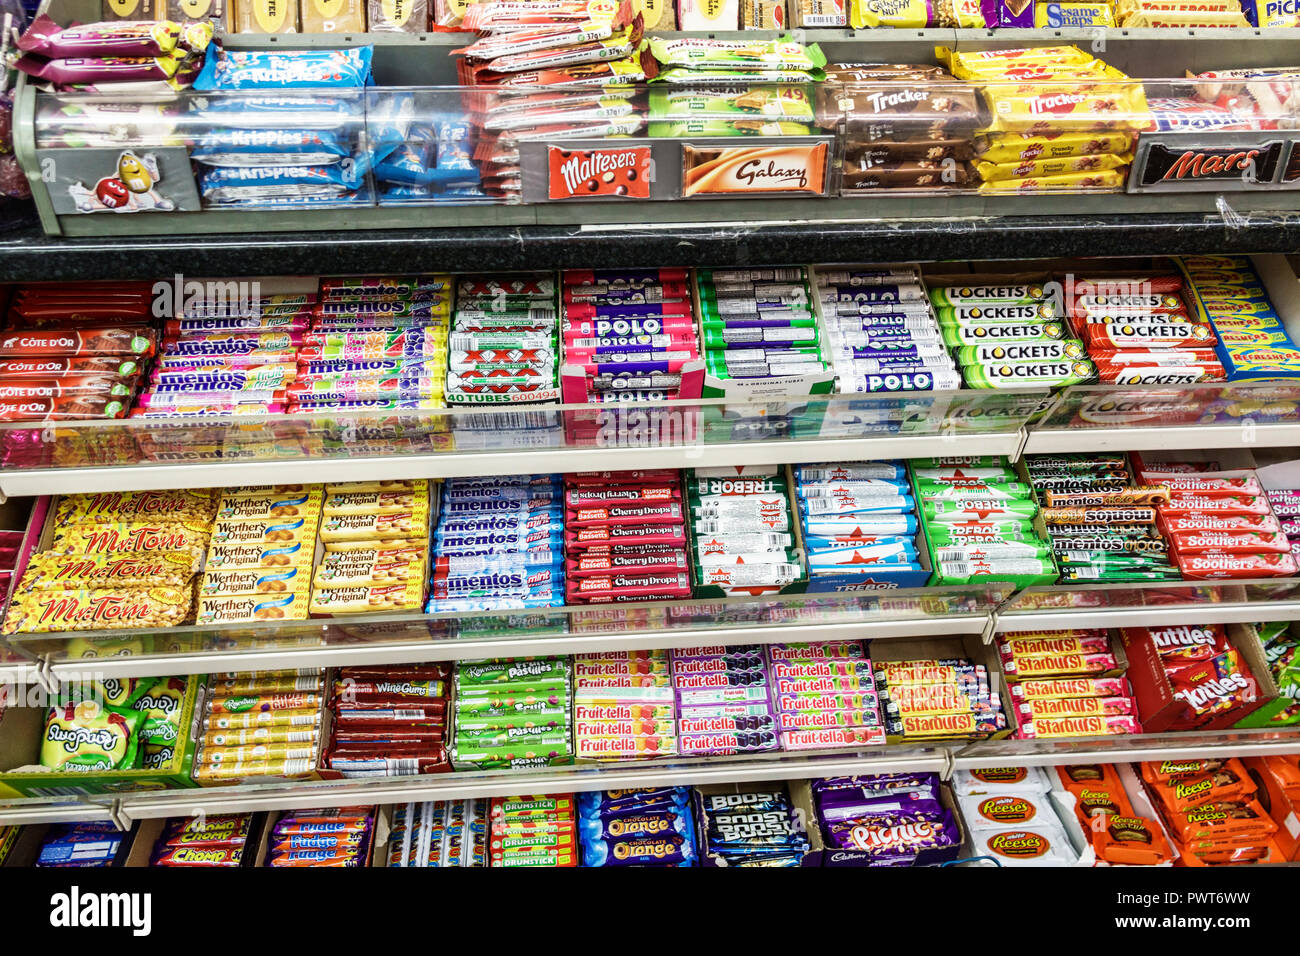 London England United Kingdom Great Britain Lambeth market grocery convenience store display breath mints gum chocolate candy Mentos Polo shelves disp - Stock Image